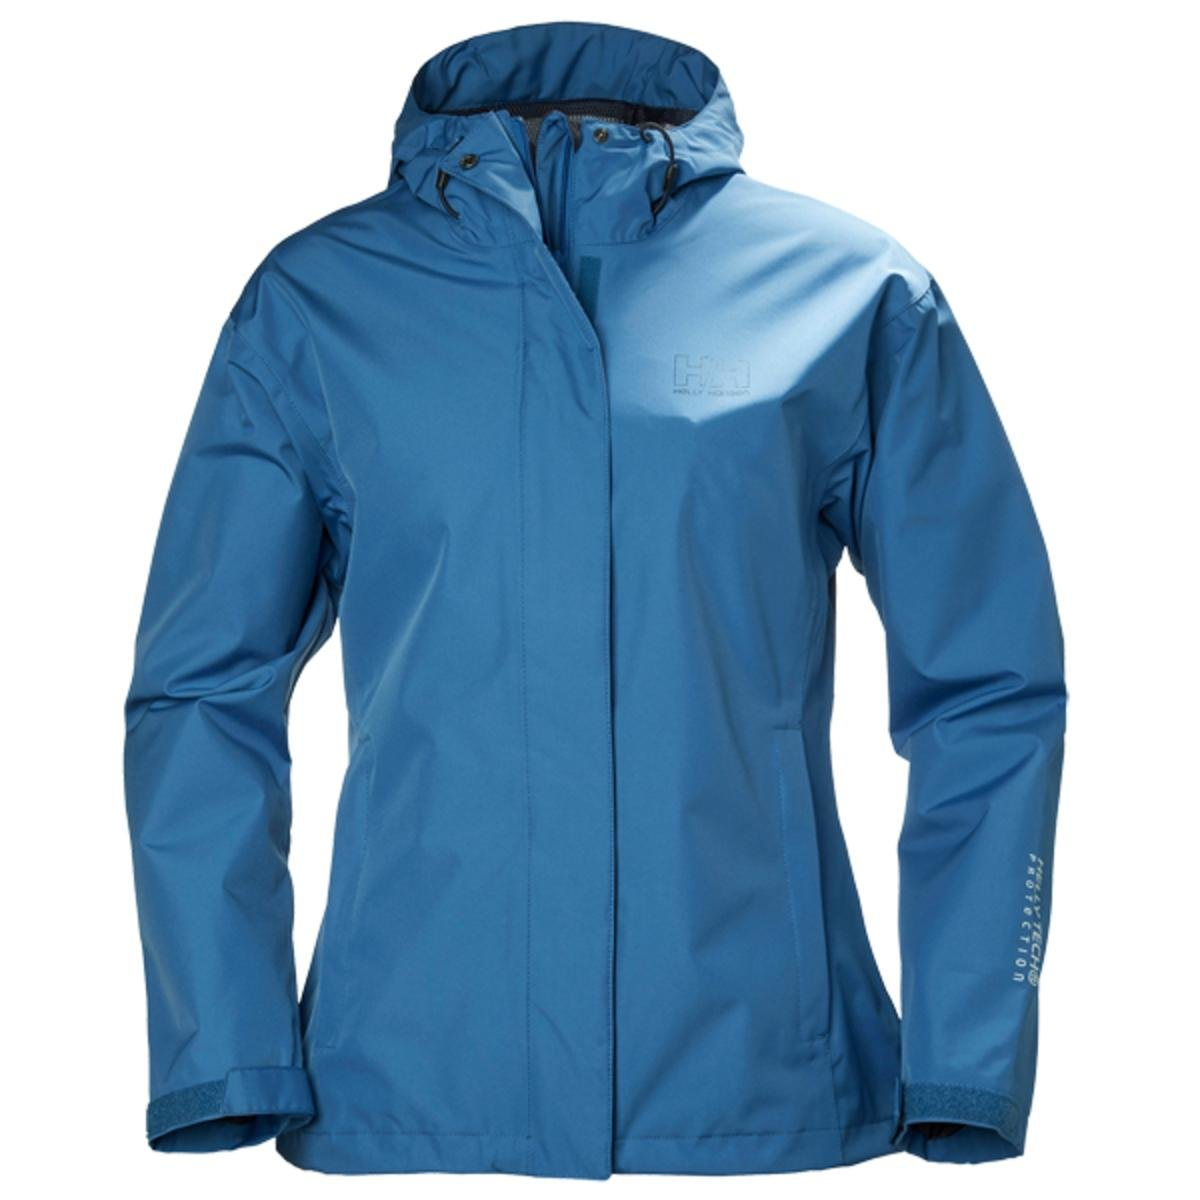 8a4000572ff Helly Hansen Women's Seven J Jacket - Stone Blue - The Warming Store